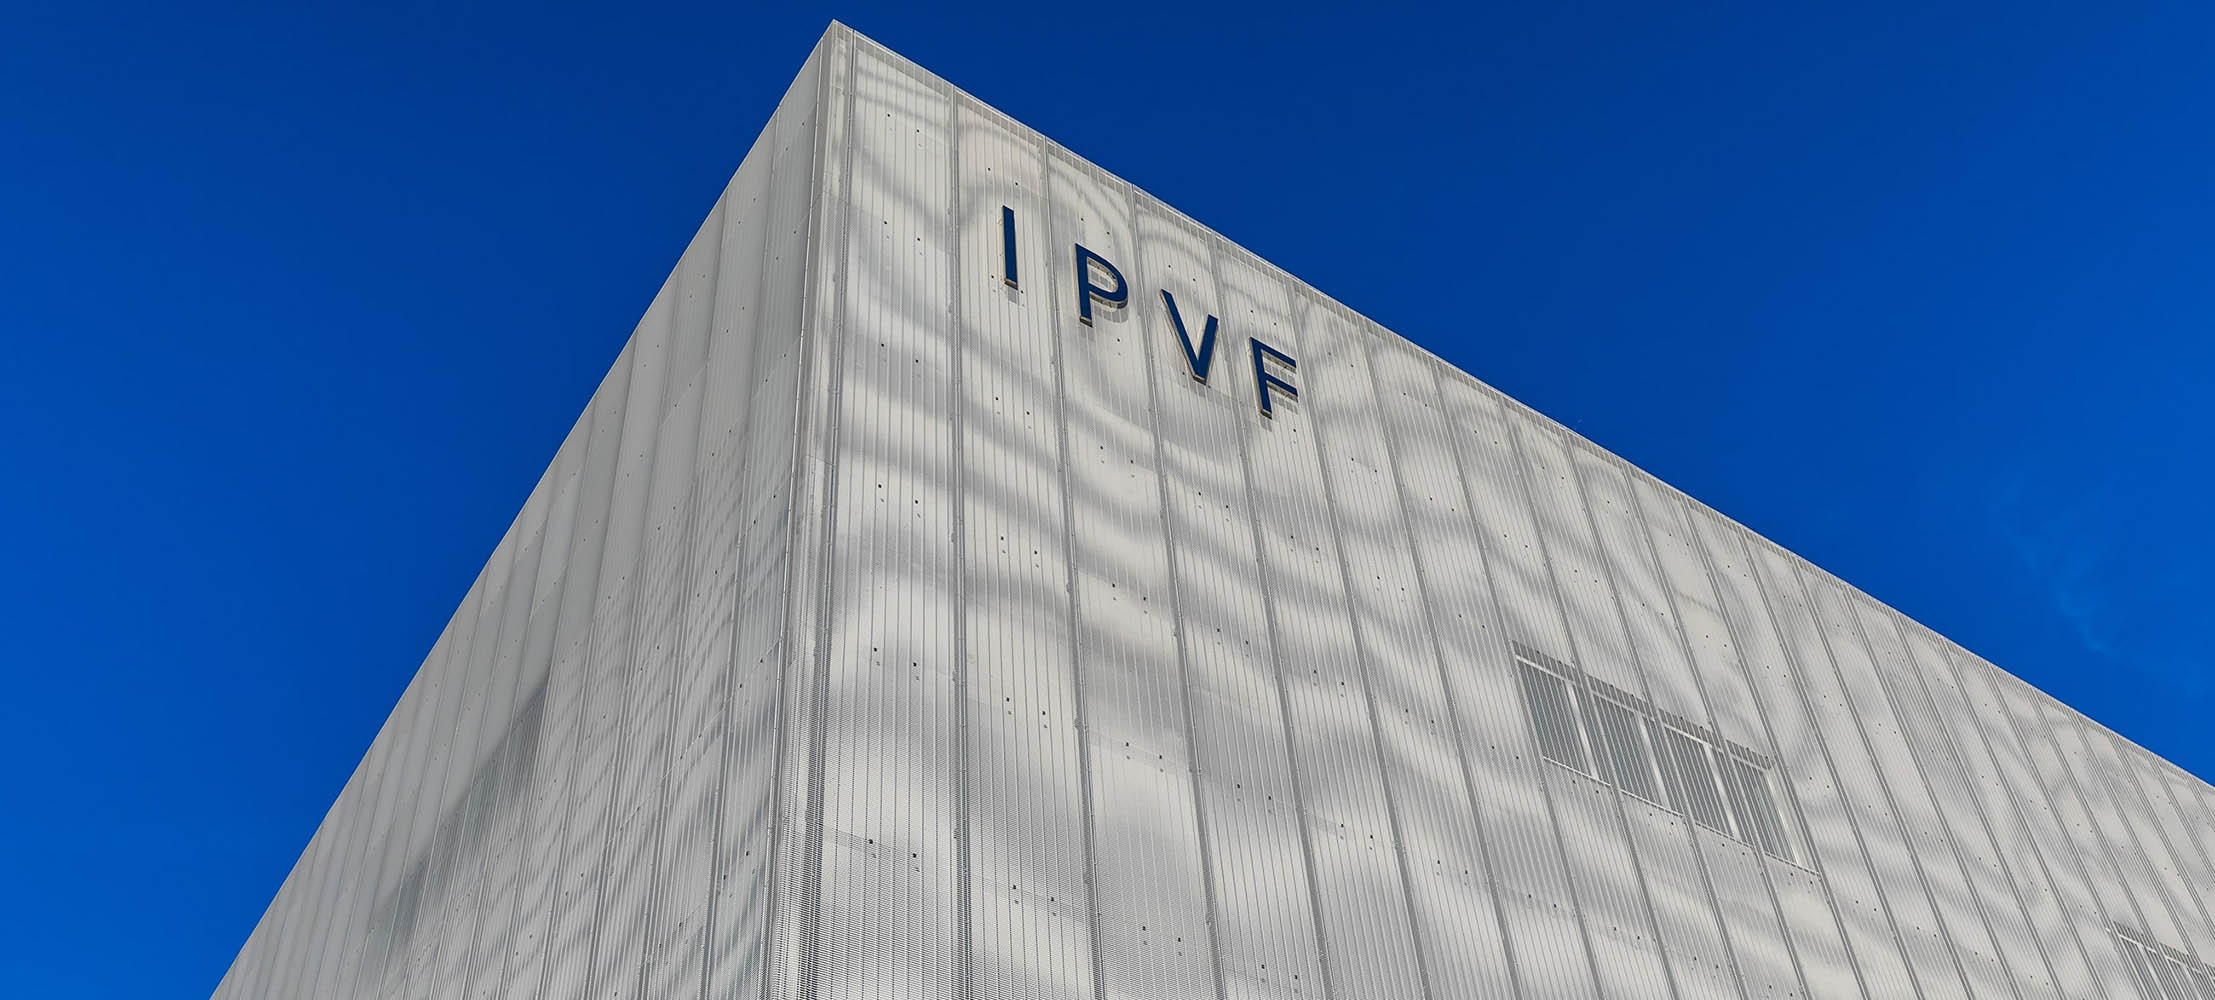 Newsletter IPVF – October 2019